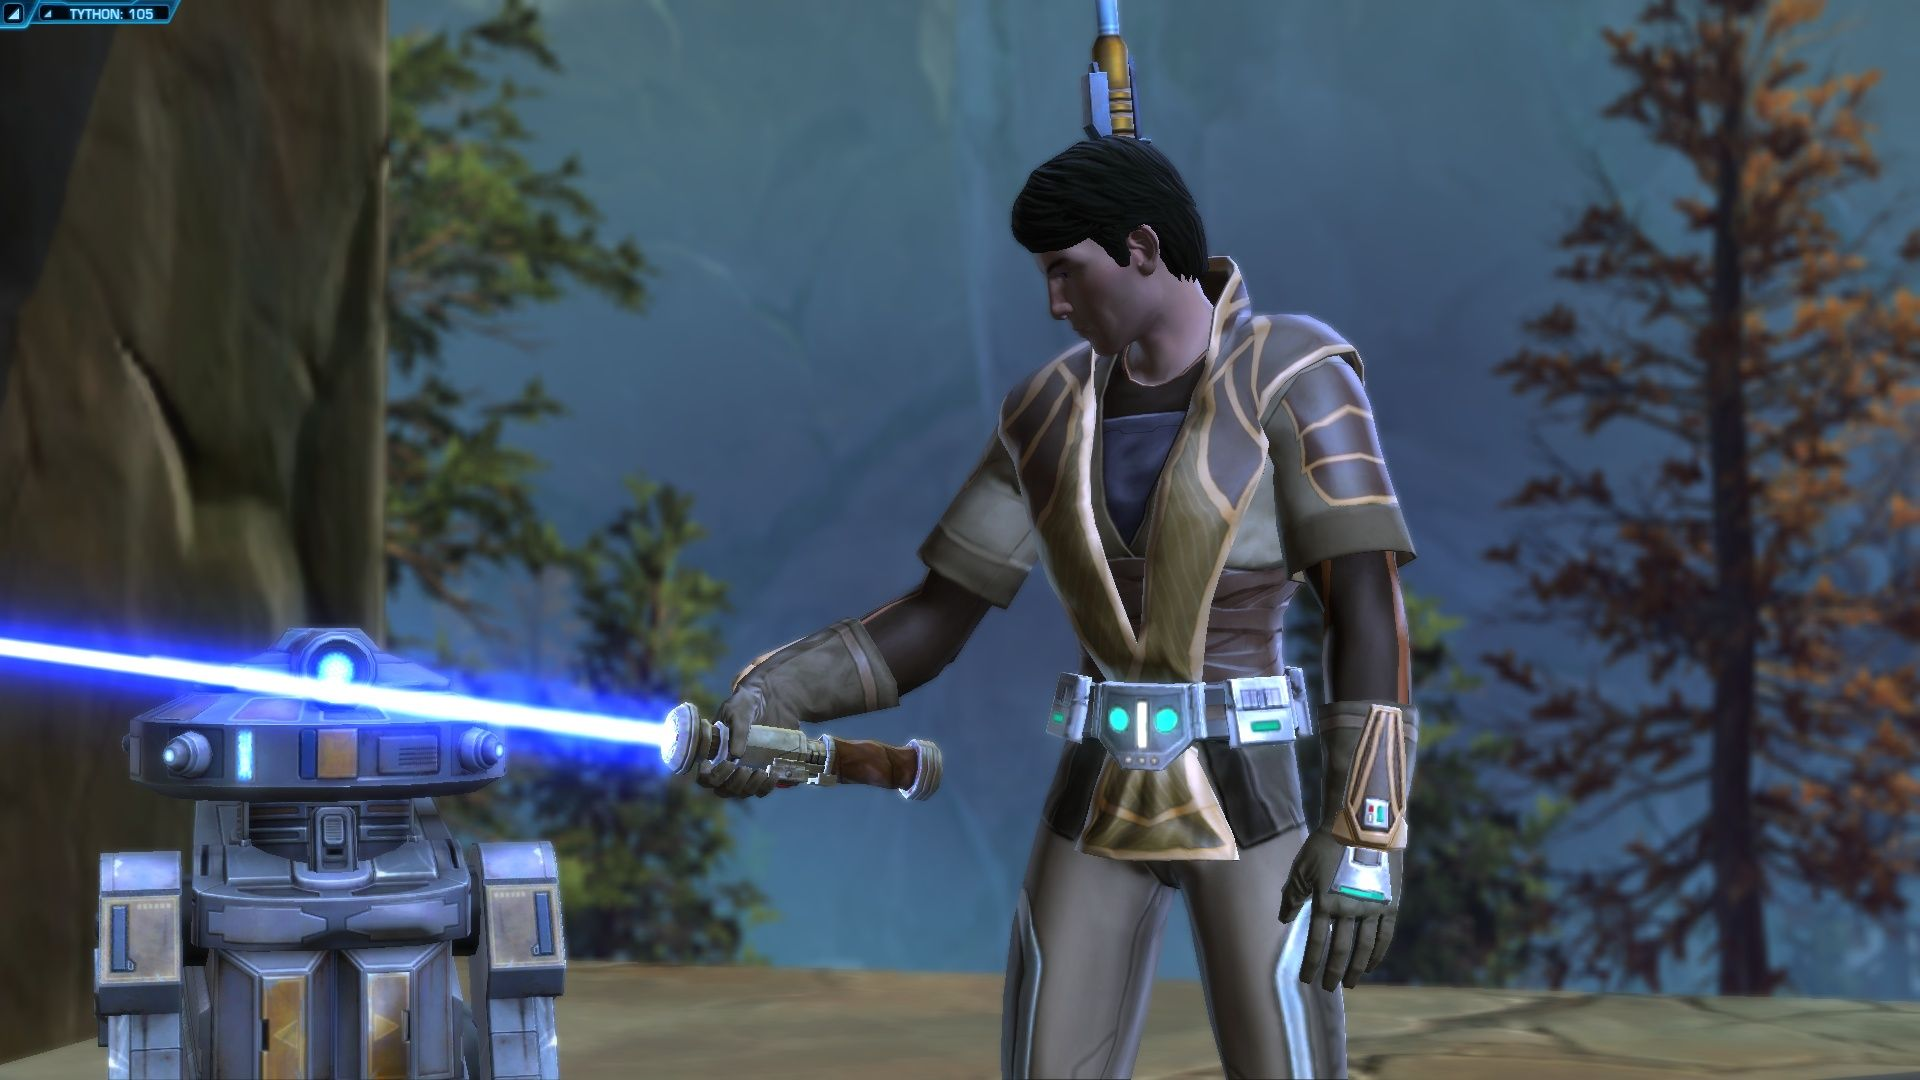 Star Wars Offers Fans a Platinum Light Saber for About $60 - Star Wars: The Old Republic - MMORPG.com